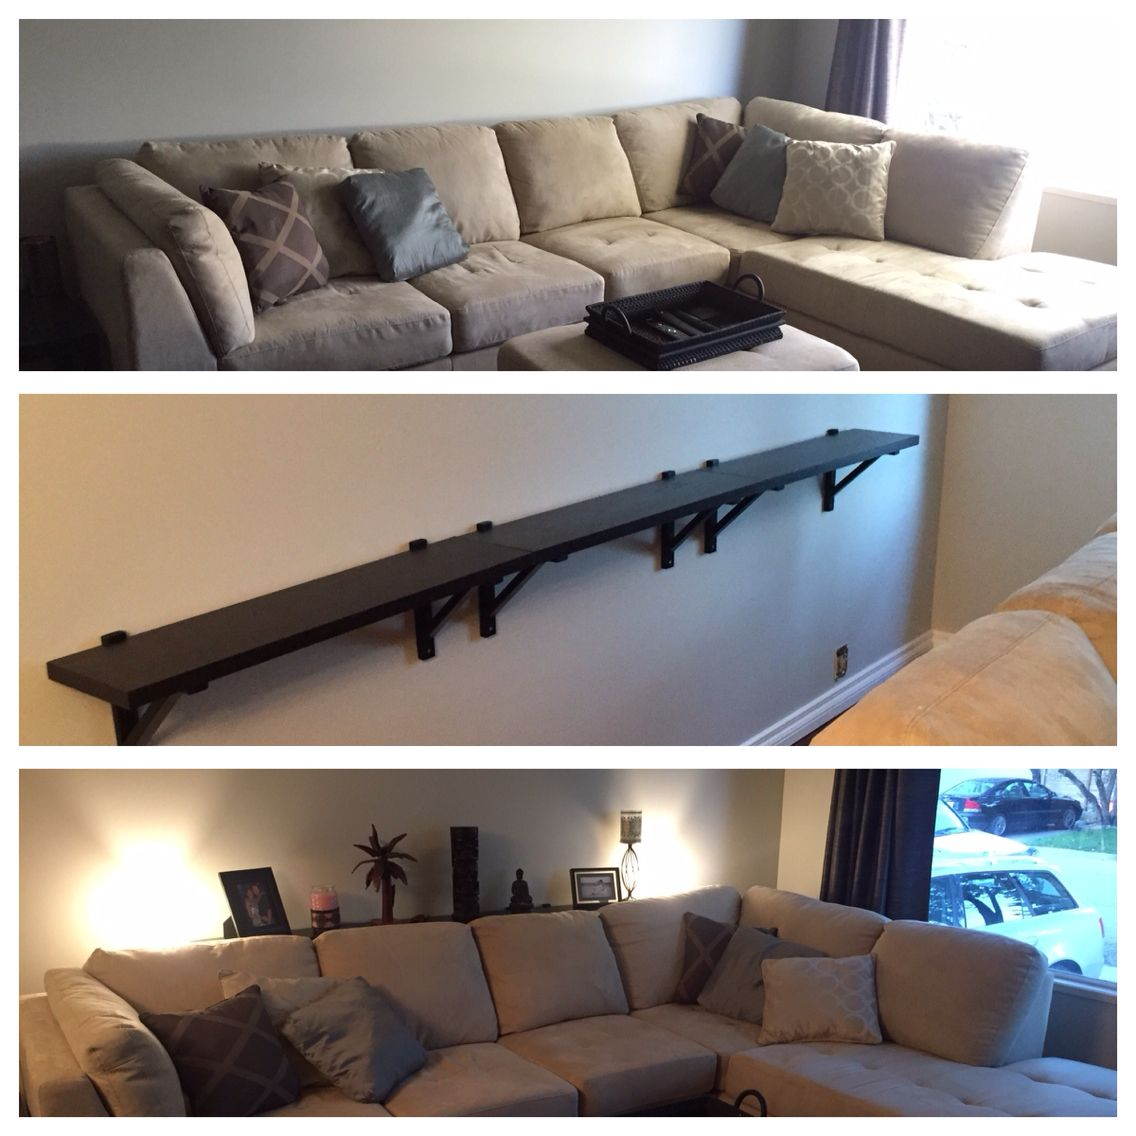 Sofa Table Diy Diy Sofa Table For 25 Using Stair Rails As Legs Makes It Easy To